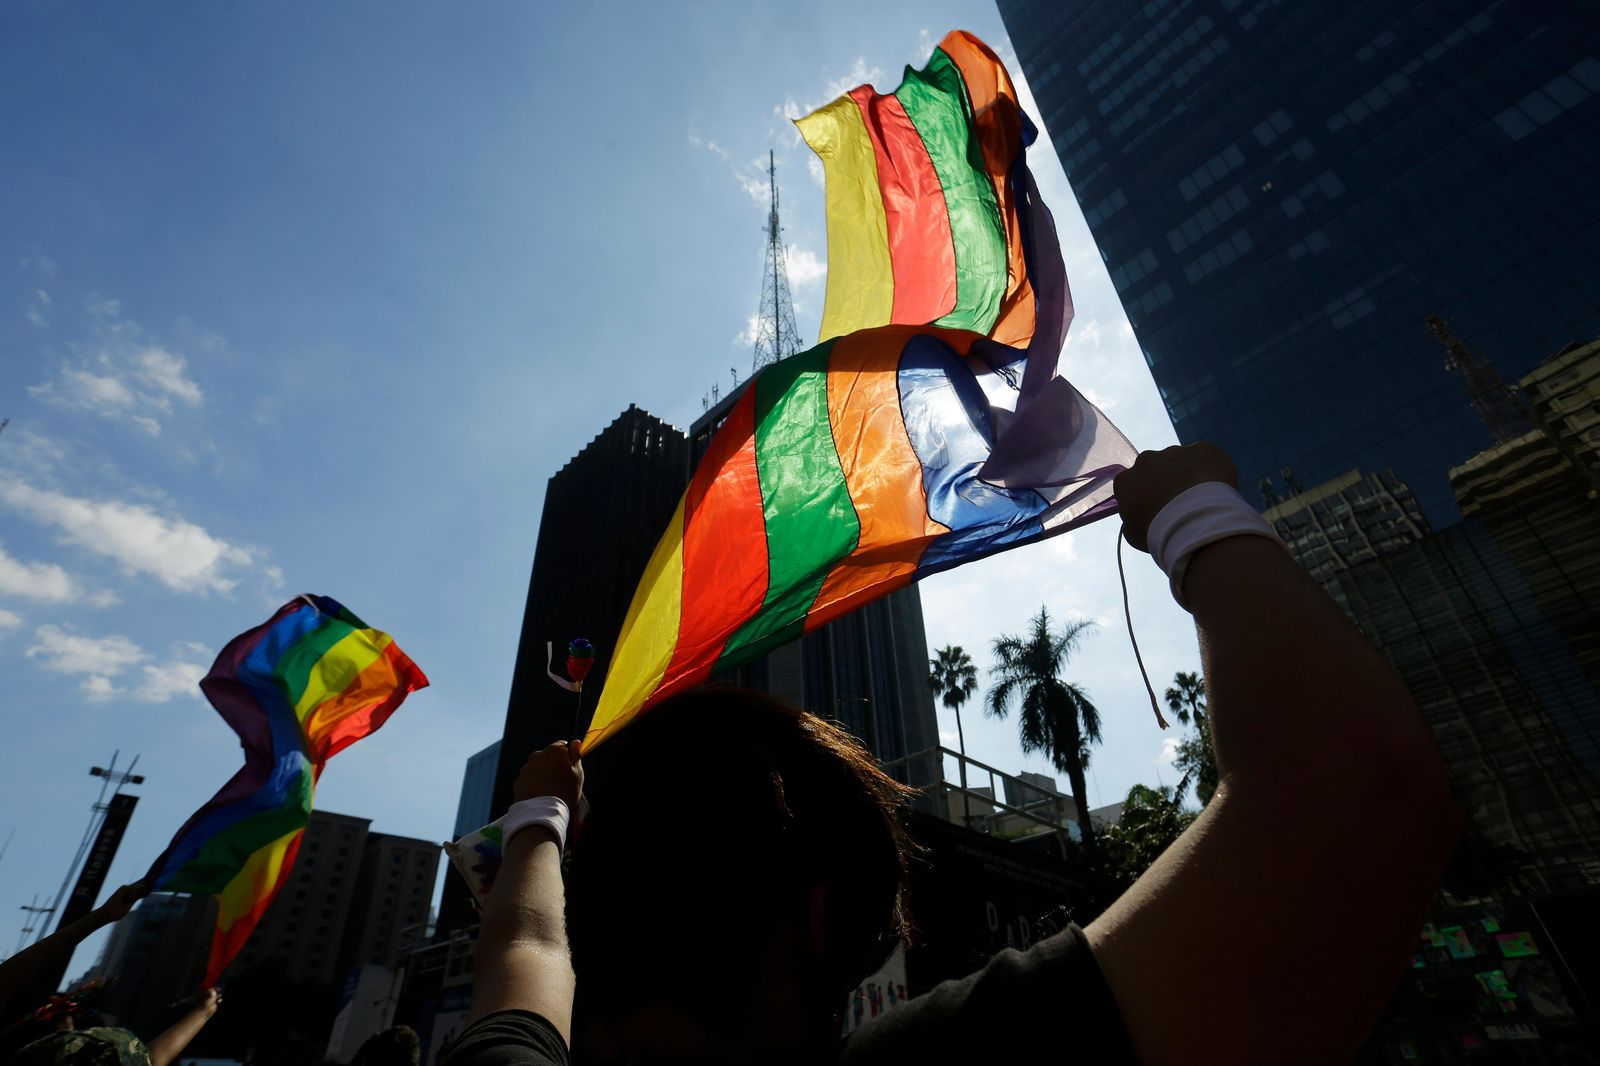 Revelers wave rainbow flags during the annual gay pride parade along Paulista avenue in Sao Paulo, Brazil, Sunday, June 23, 2019. (AP Photo/Nelson Antoine)